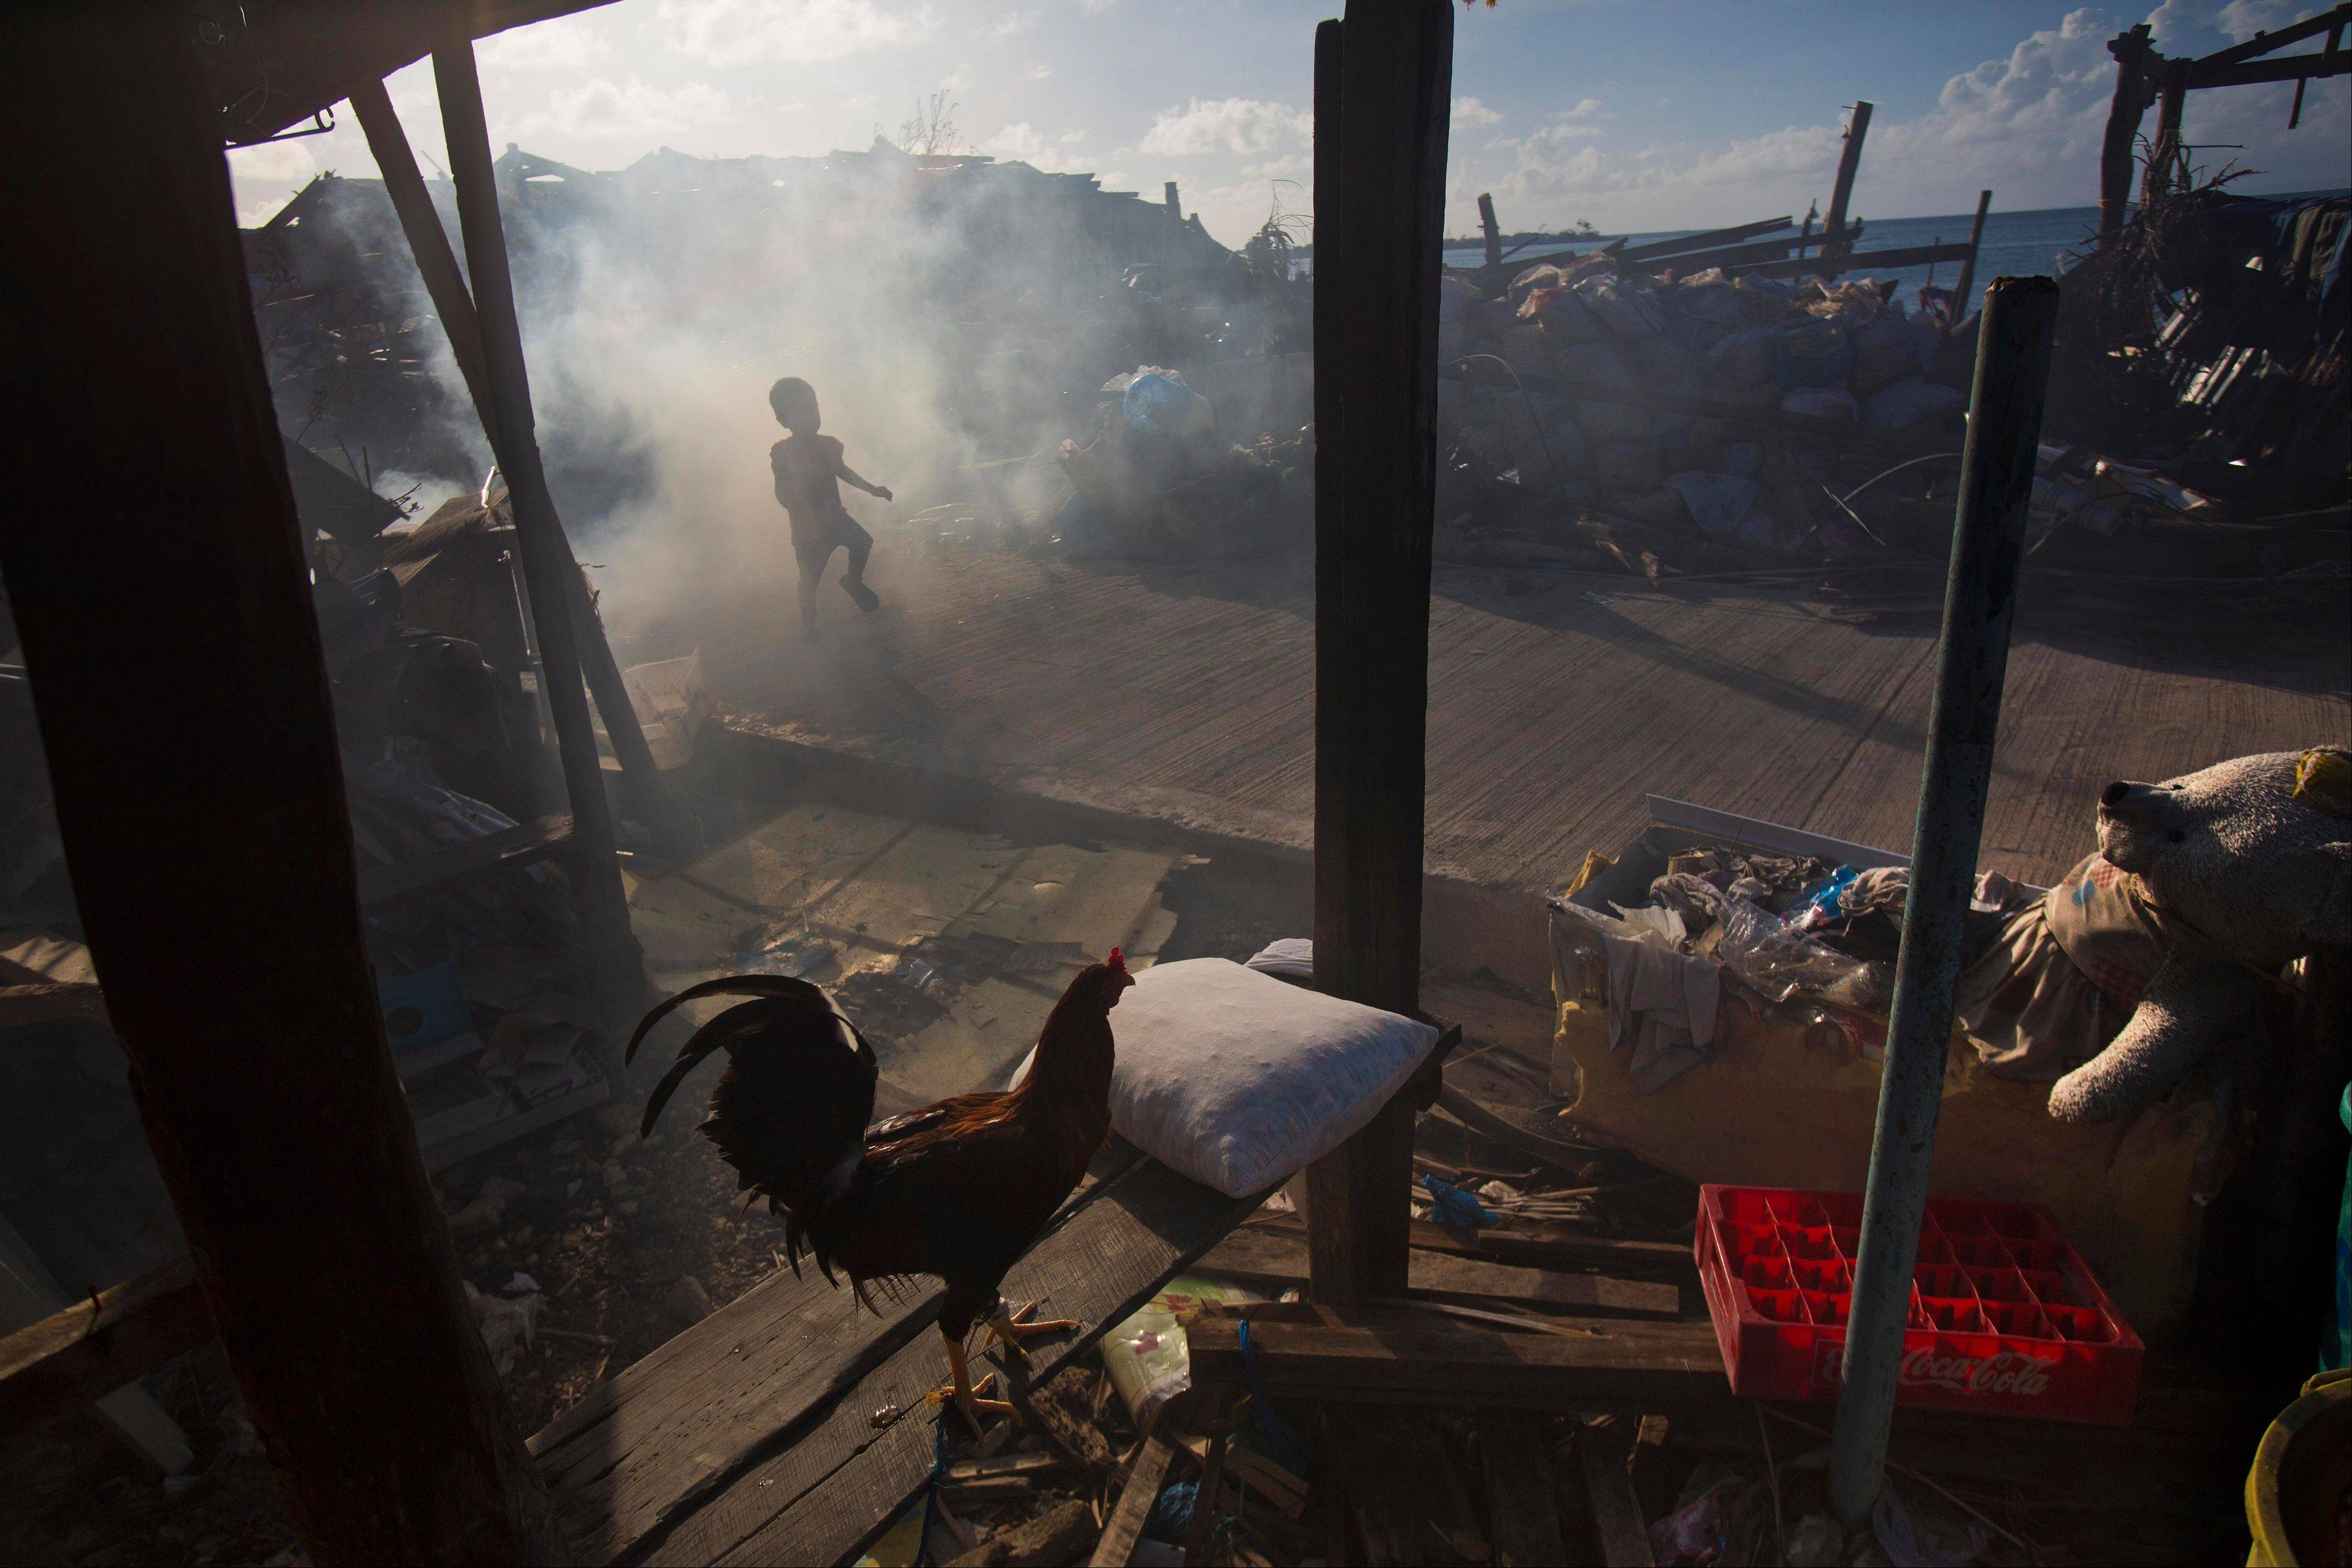 A boy runs through the smoke of a cooking fire in the typhoon-shattered town of Guiuan, Philippines, on Friday, Nov. 15, 2013. Typhoon Haiyan, one of the most powerful storms on record, hit the country's eastern seaboard Nov. 8, leaving a wide swath of destruction.